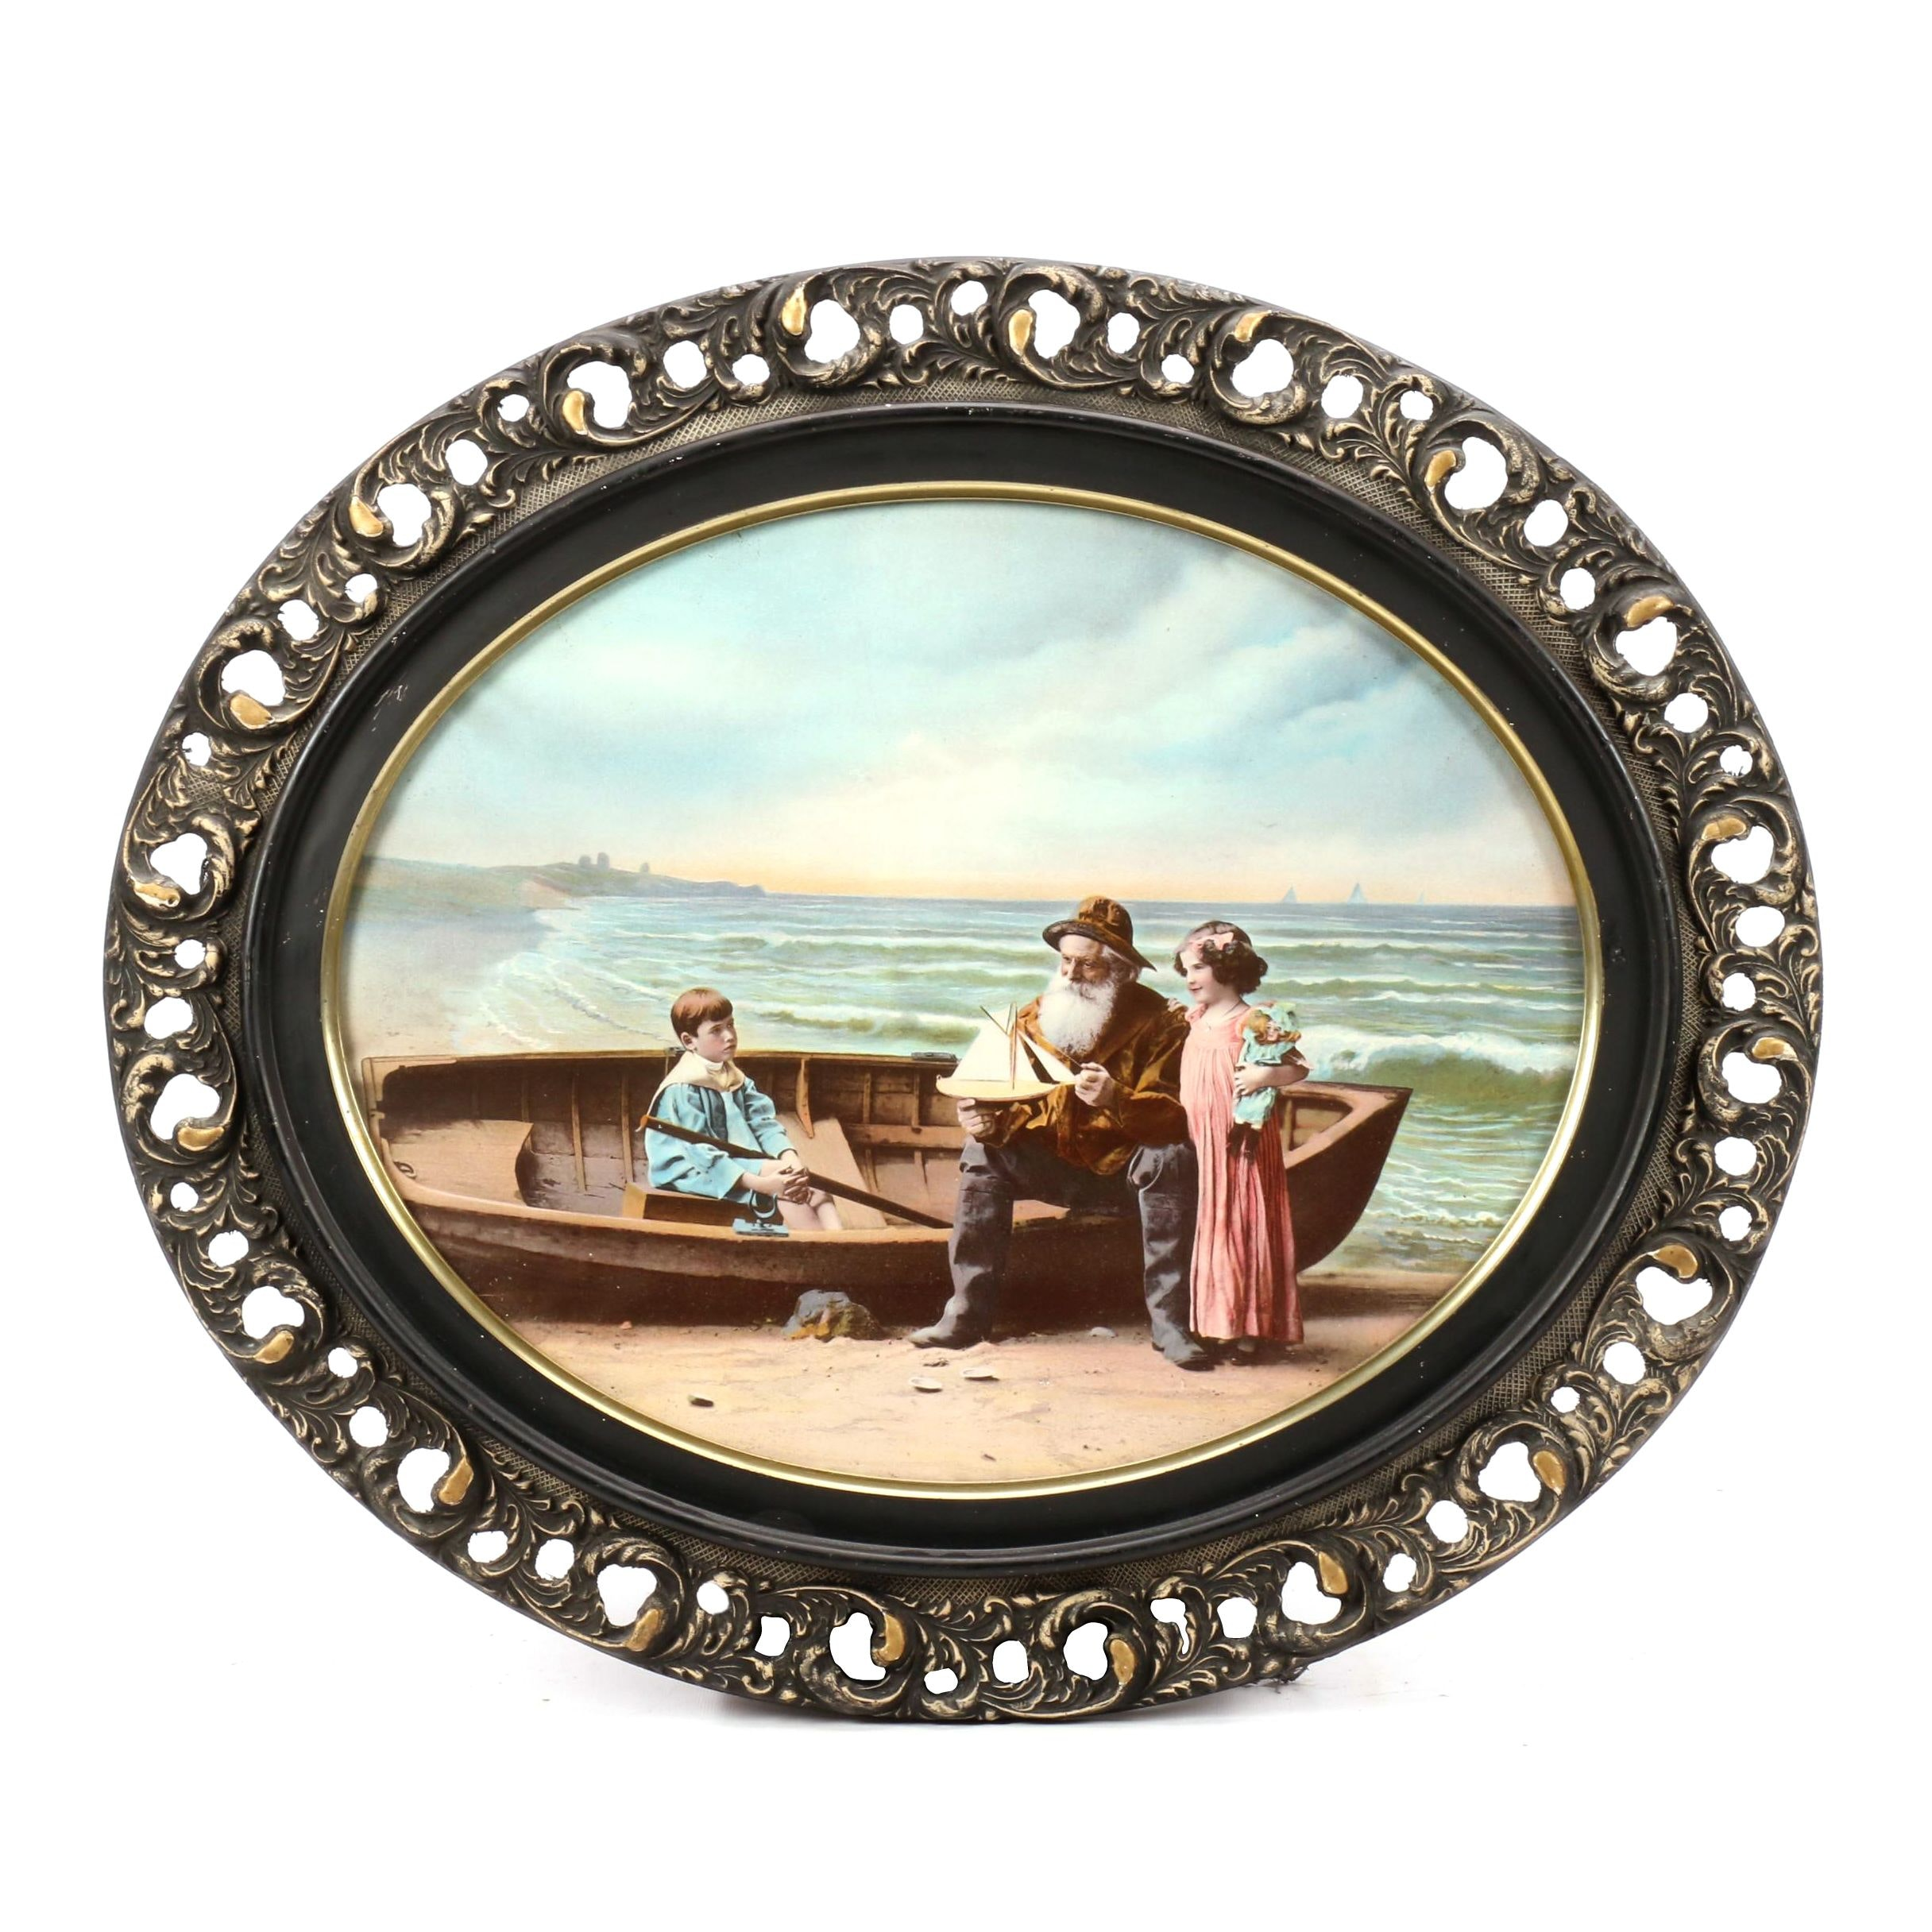 Vintage Offset Lithograph of Sailor and Children with Dinghy on the Beach